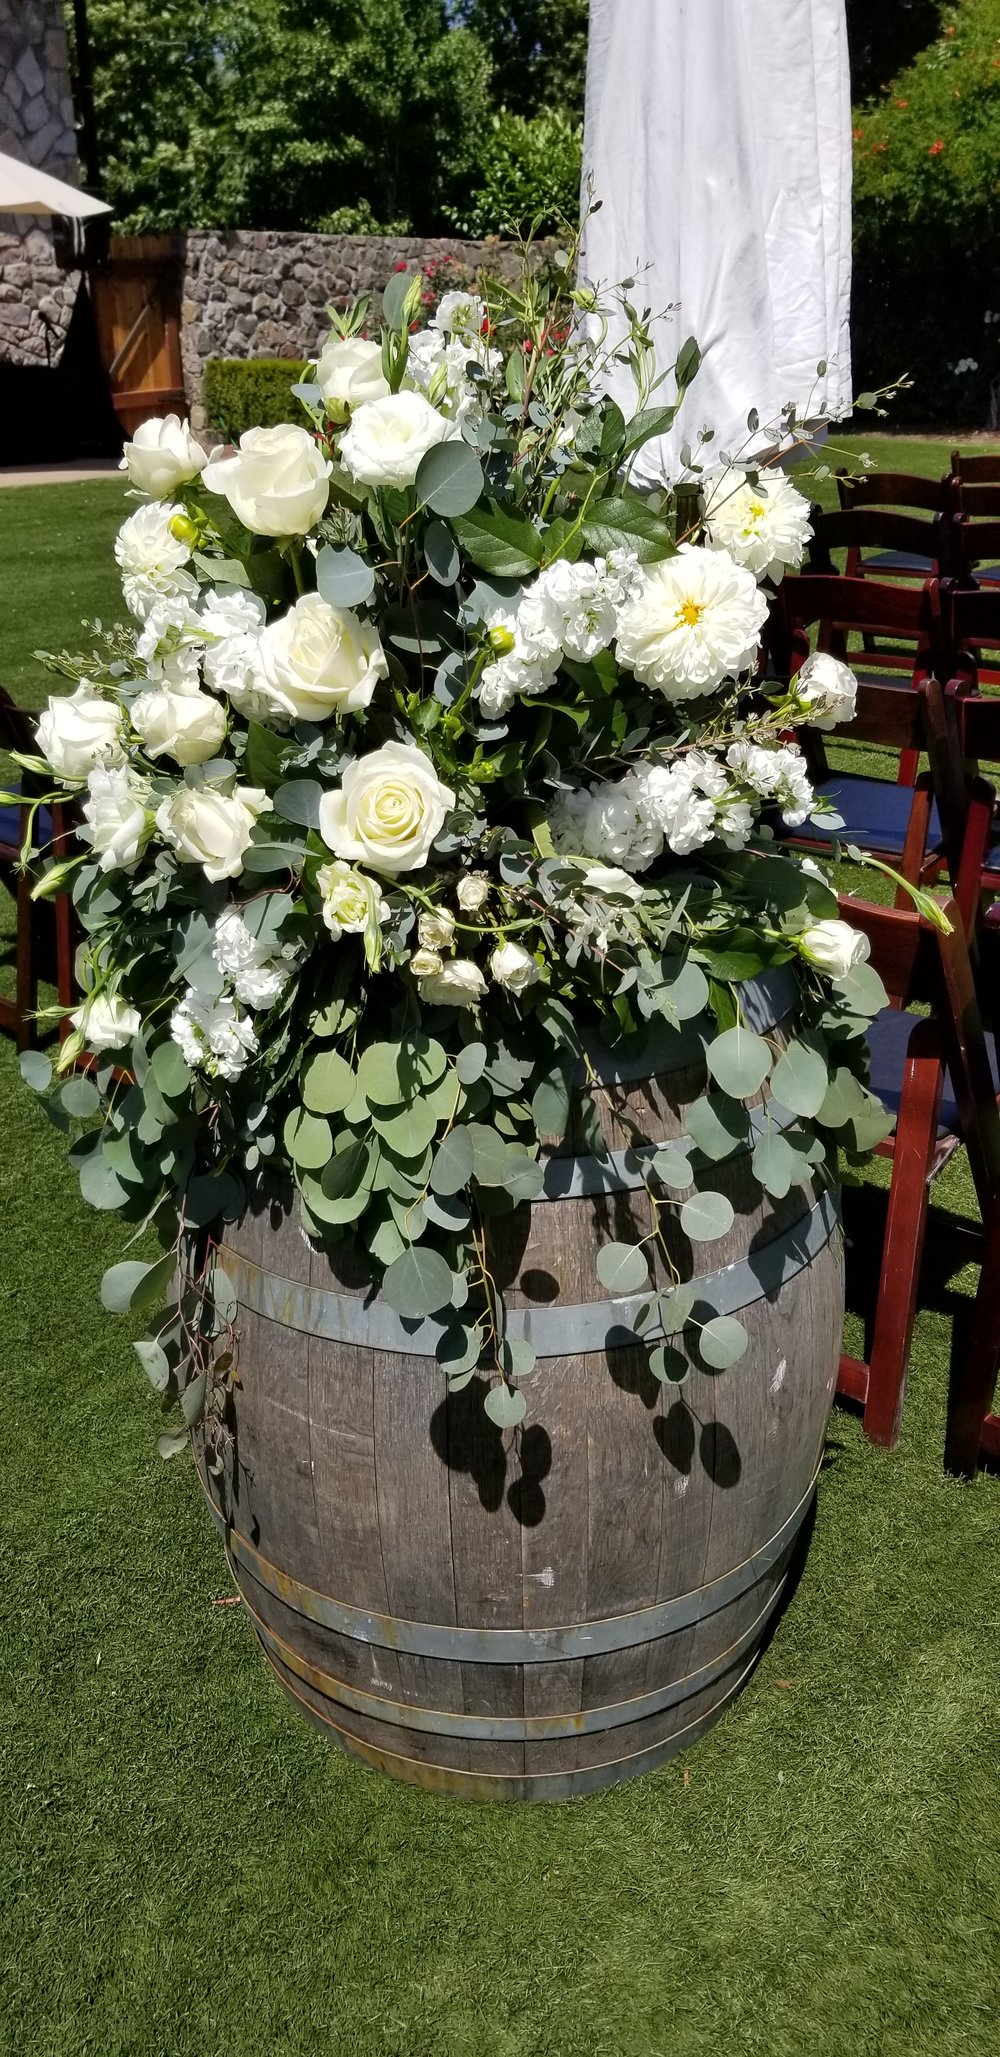 Wine barrel topper, flowing eucalyptus greens and white flowers at The Lodge Sonoma wedding ceremony.